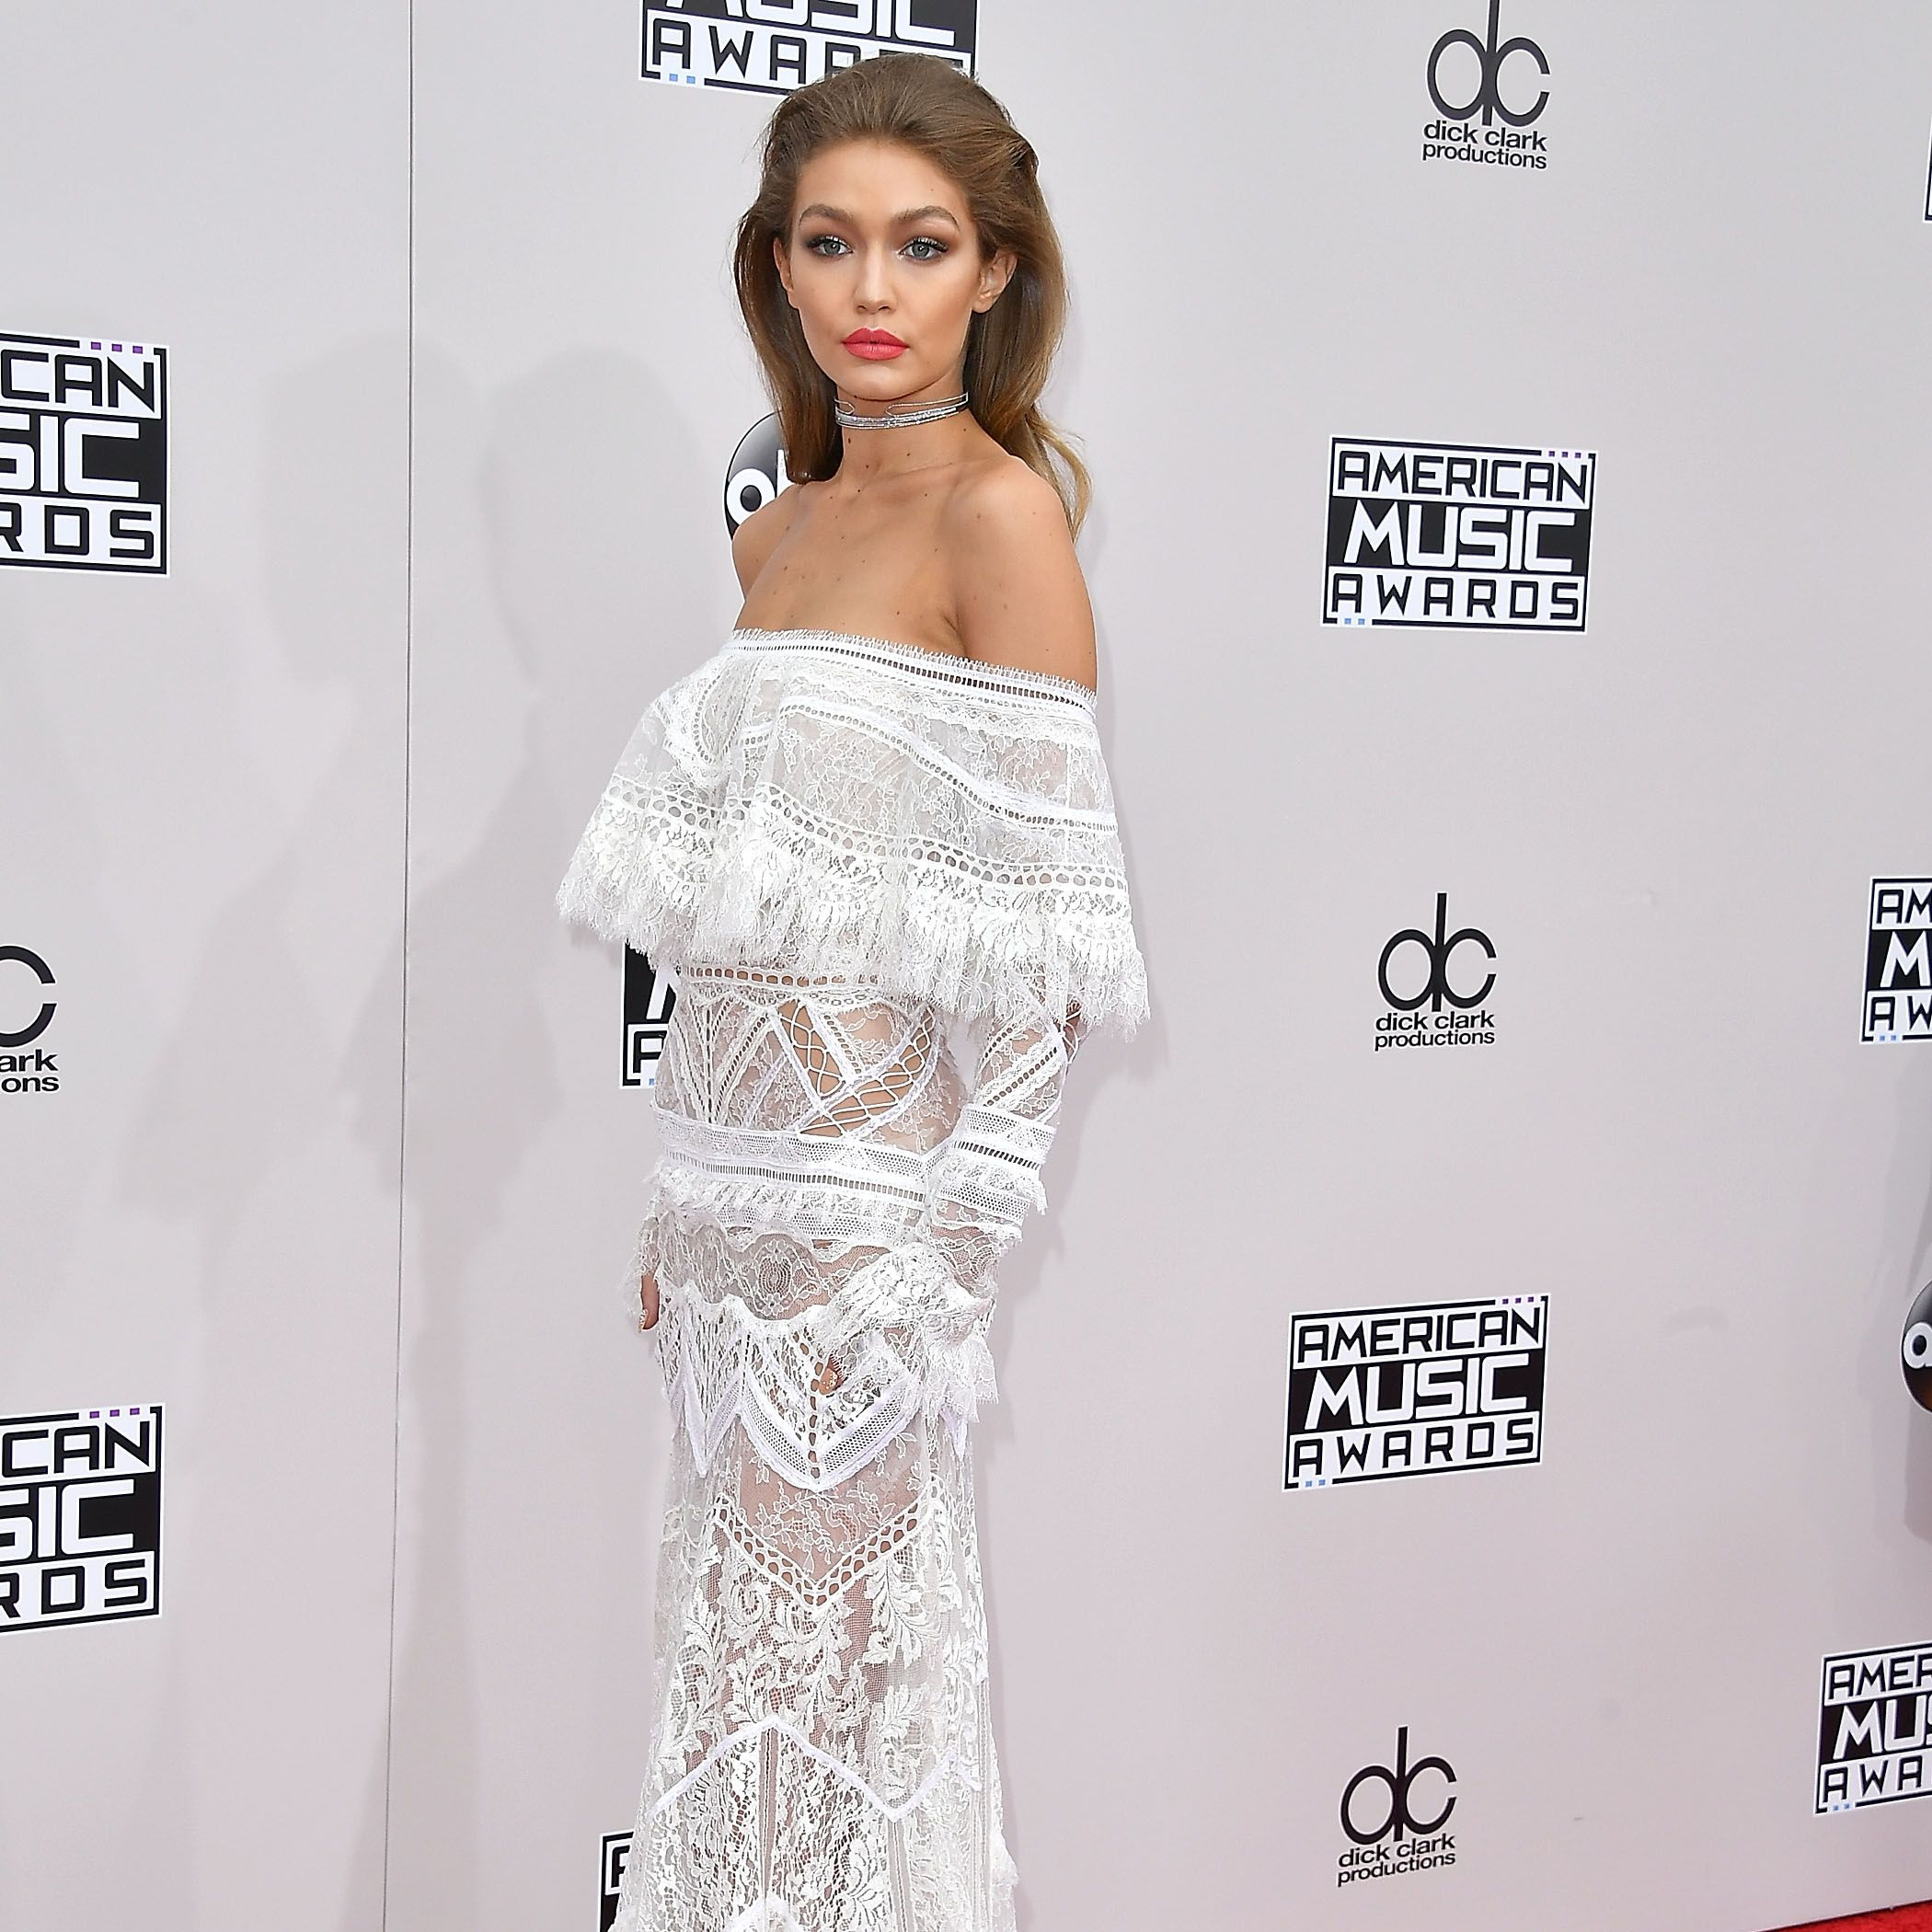 Gigi Hadid's six outfit changes while hosting the AMAs